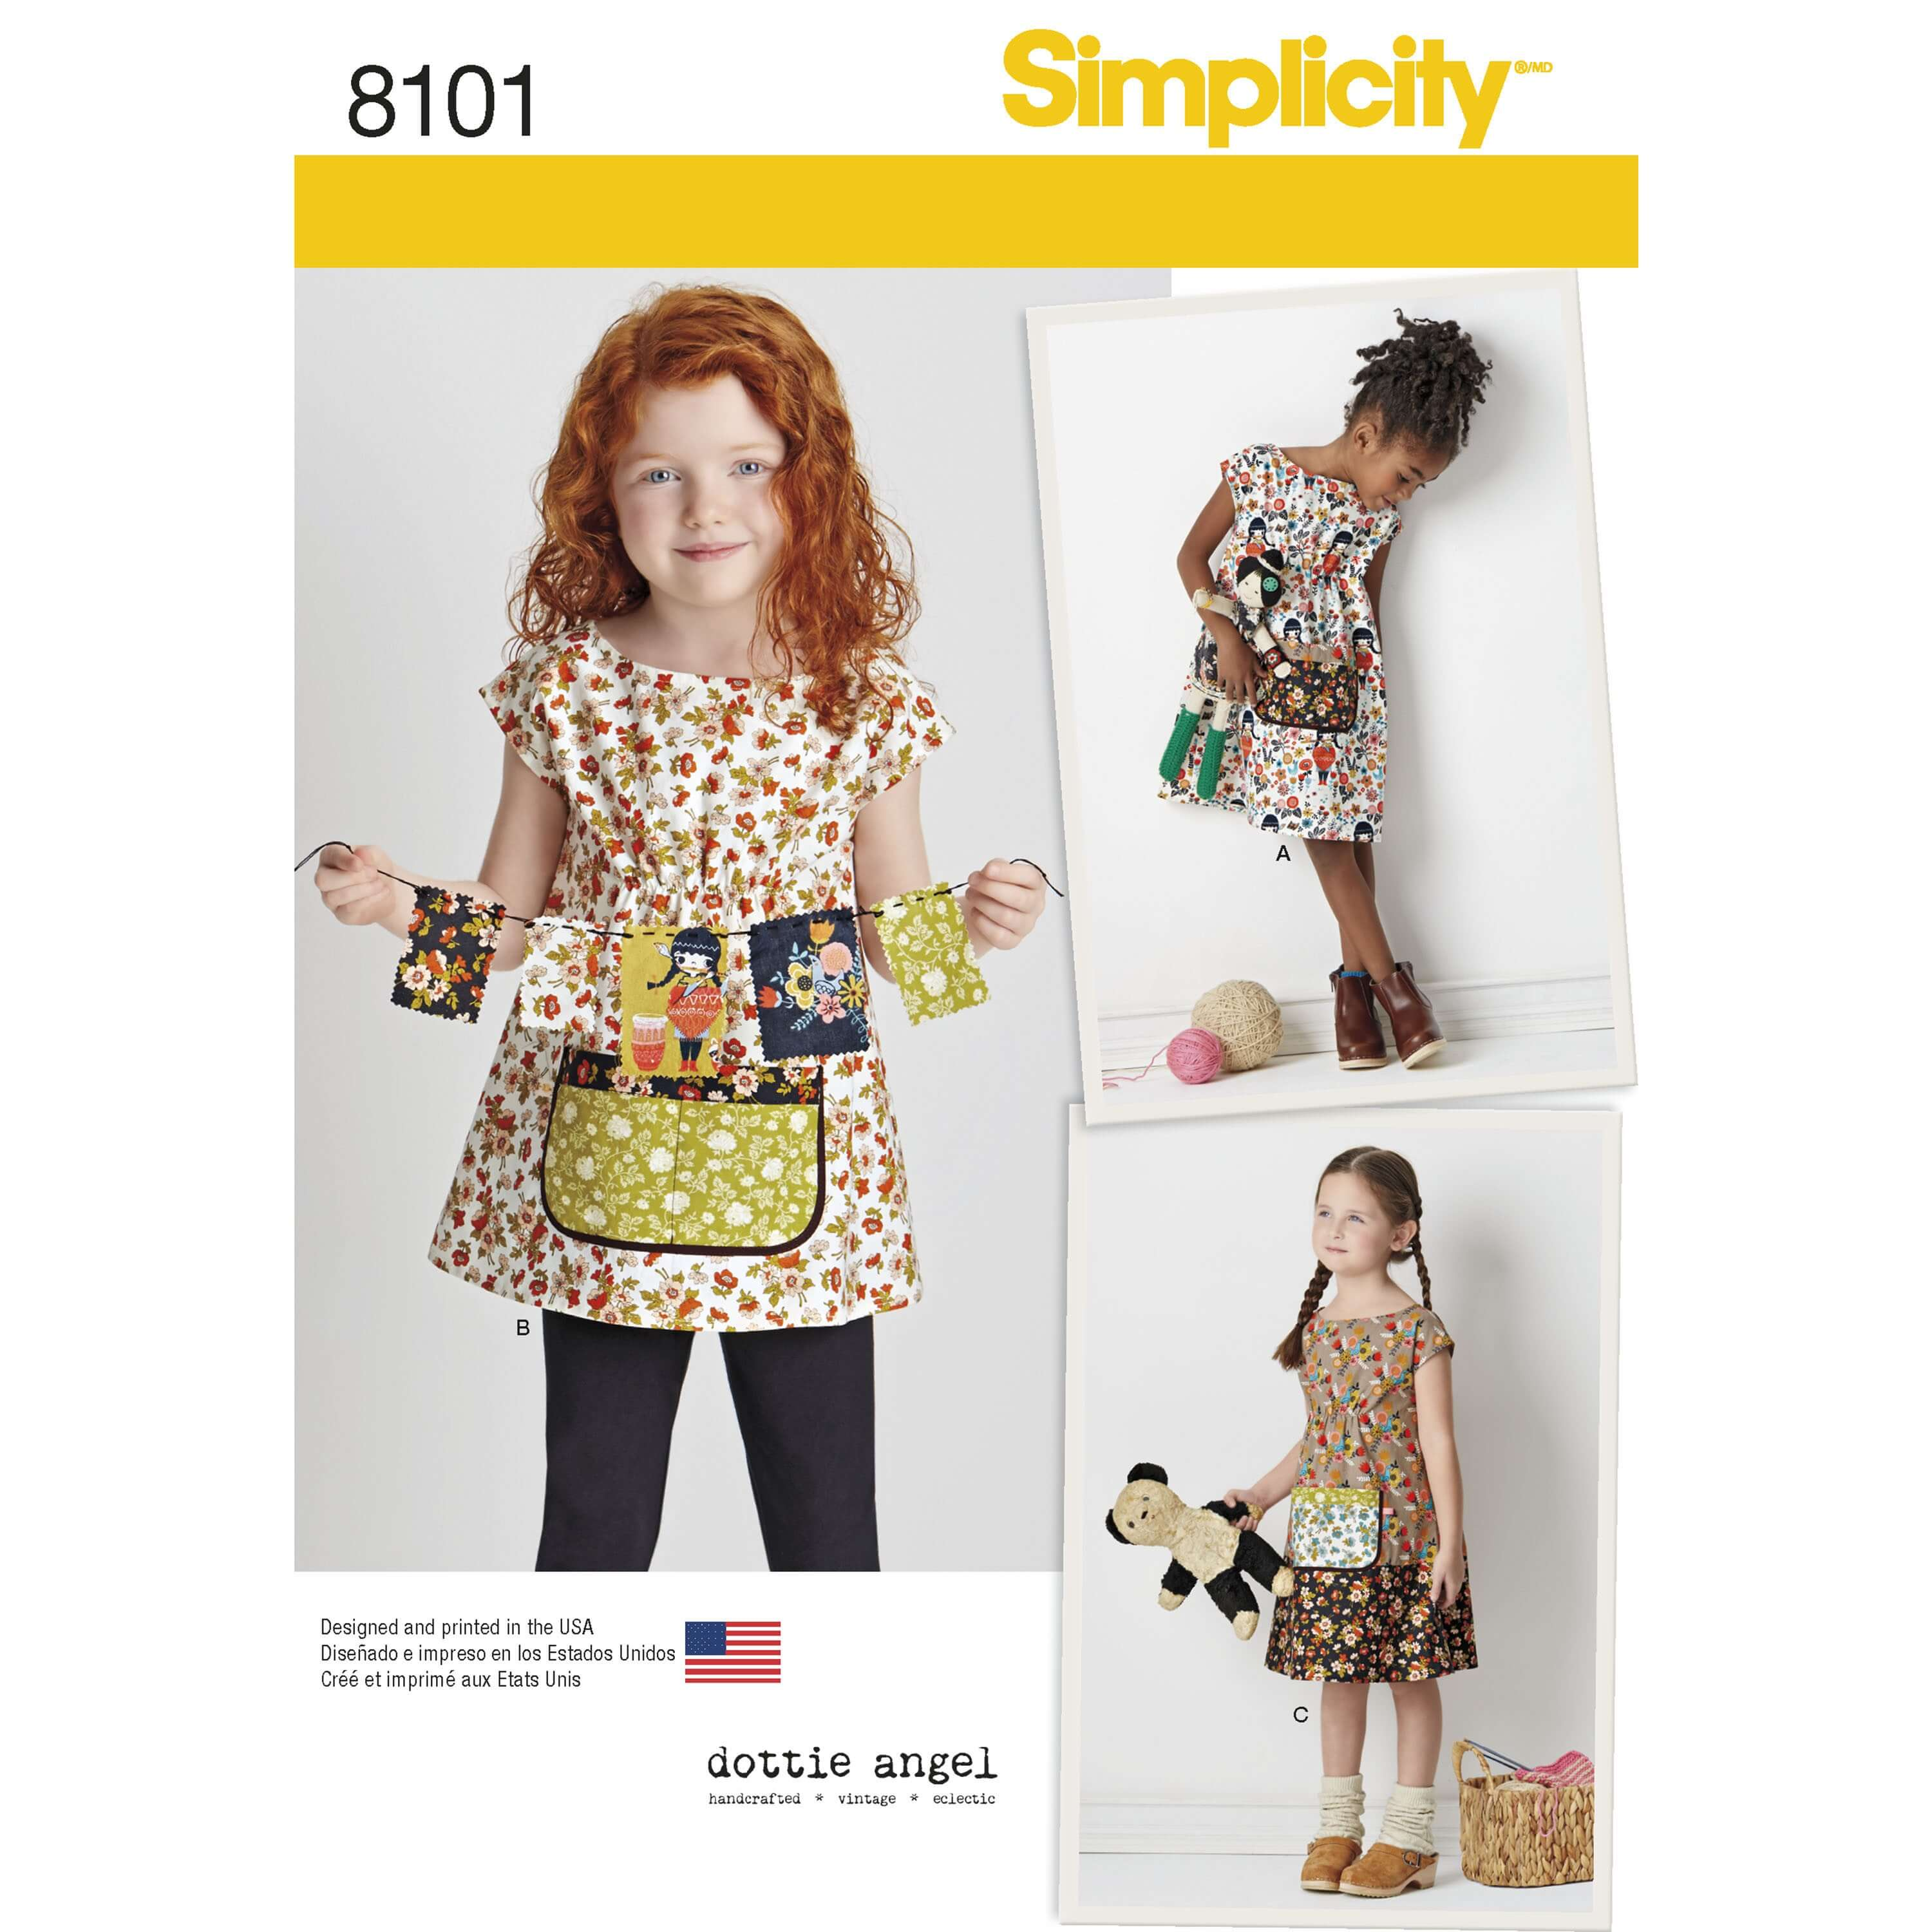 Simplicity Sewing Pattern 8101 Child's Dress and Tunic from Dottie Angel